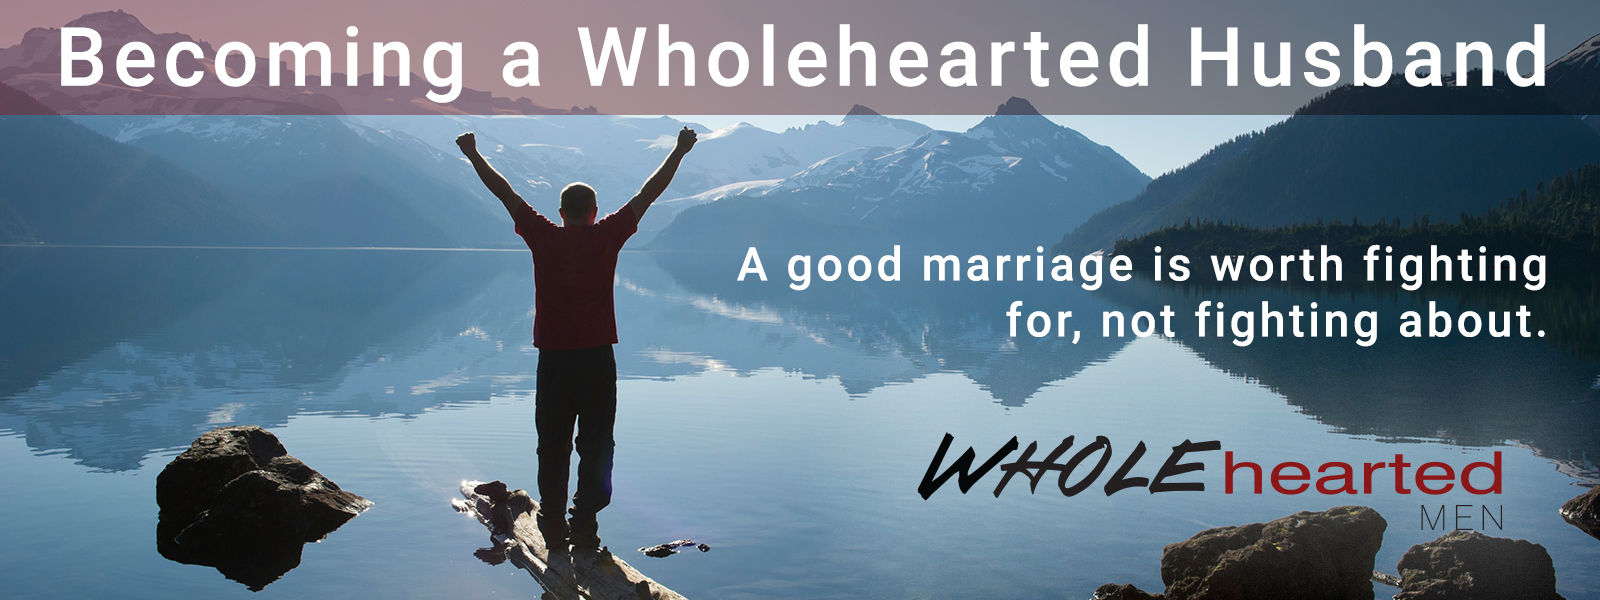 Becoming a Wholehearted Husband